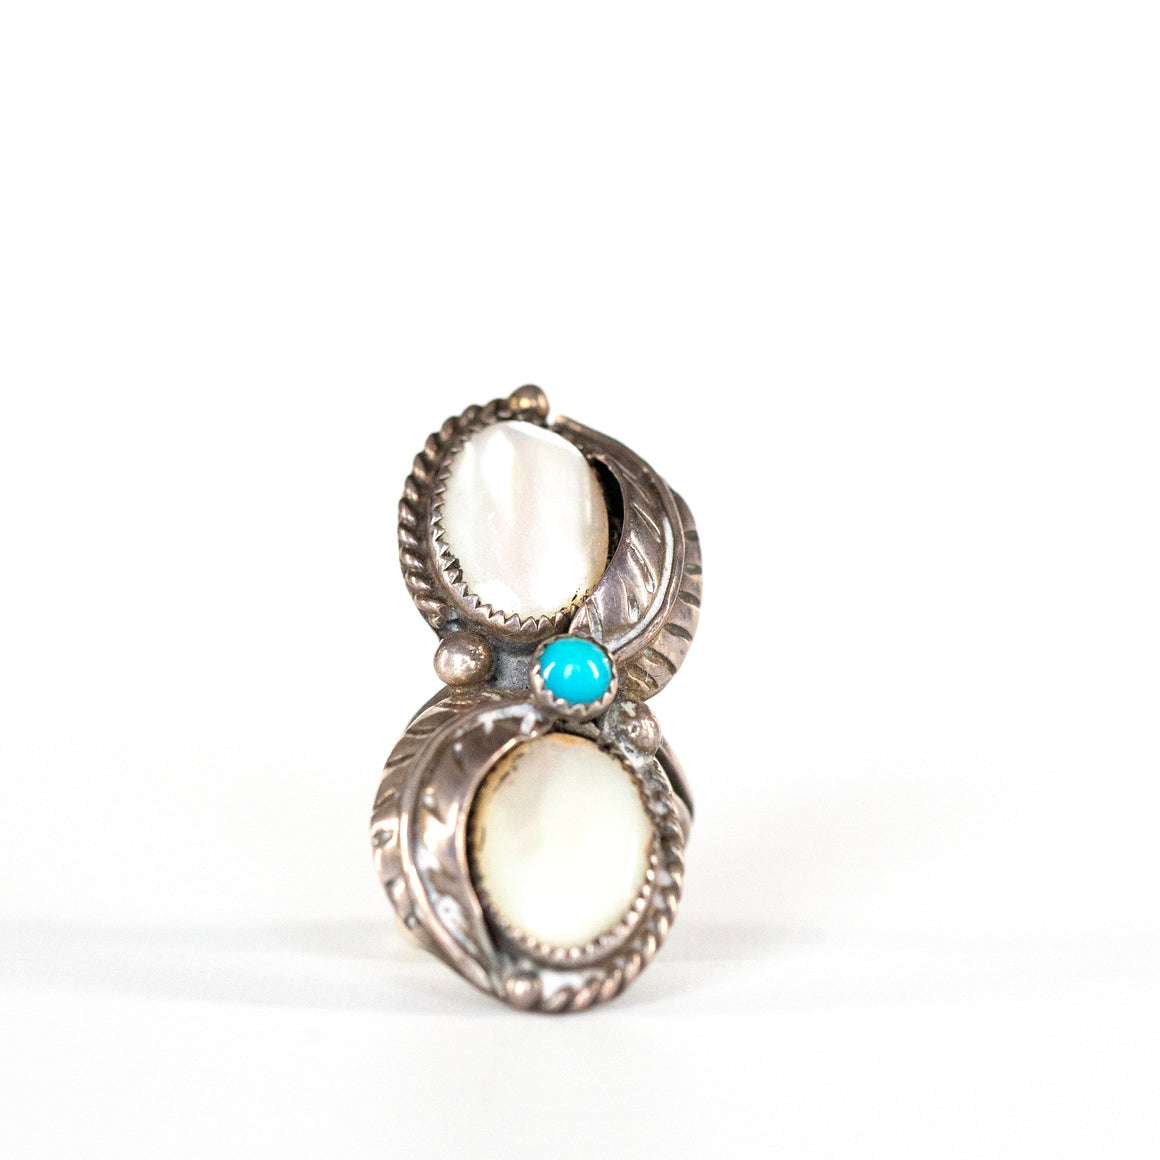 VINTAGE JEWELRY | MOTHER OF PEARL & TURQUOISE STERLING RING (SIZE 4.75)